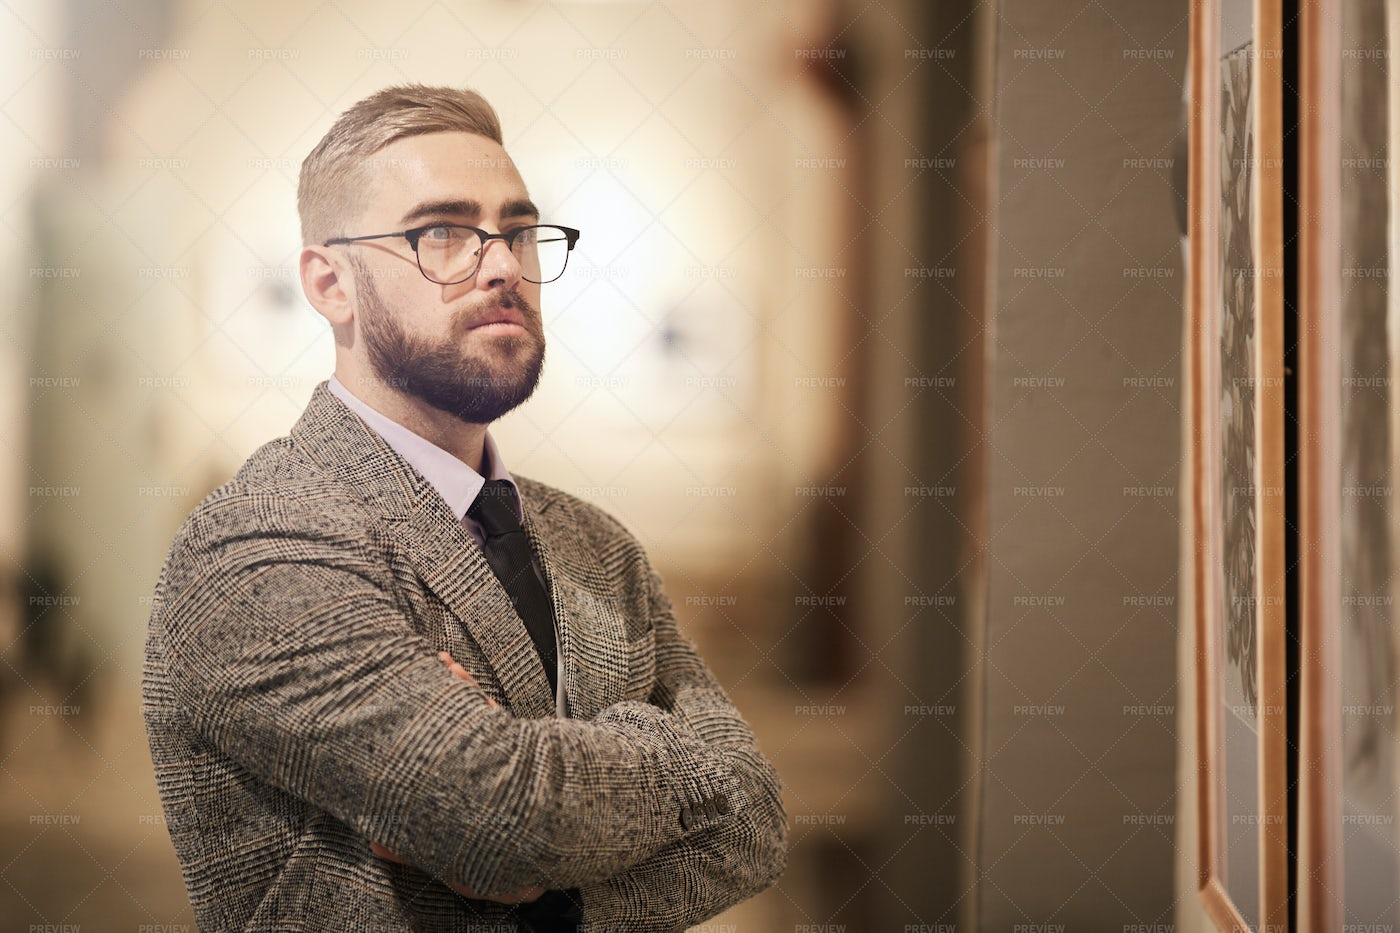 Man Studying Artwork In Gallery: Stock Photos